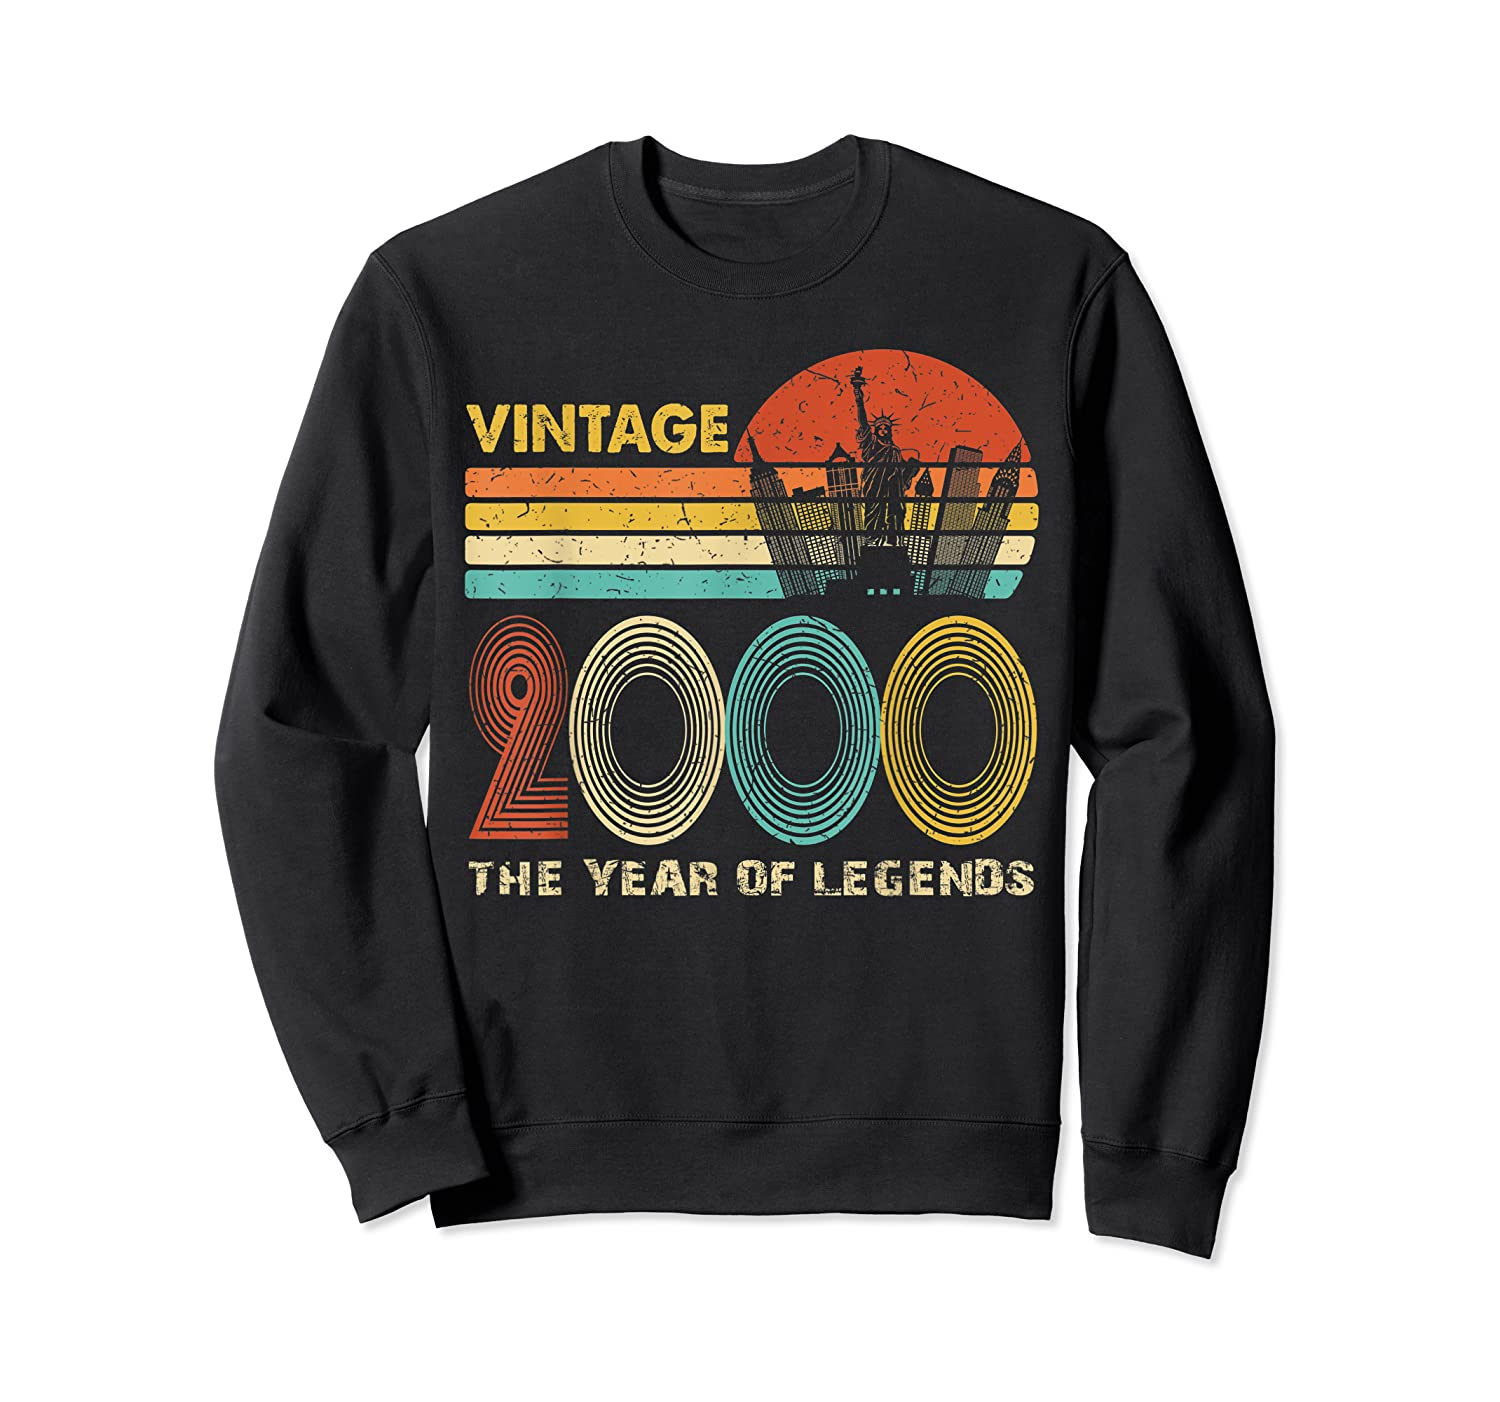 19th Birthday Gift Vintage 2000 T-shirt 19 Years Old T-shirt Crewneck Sweater